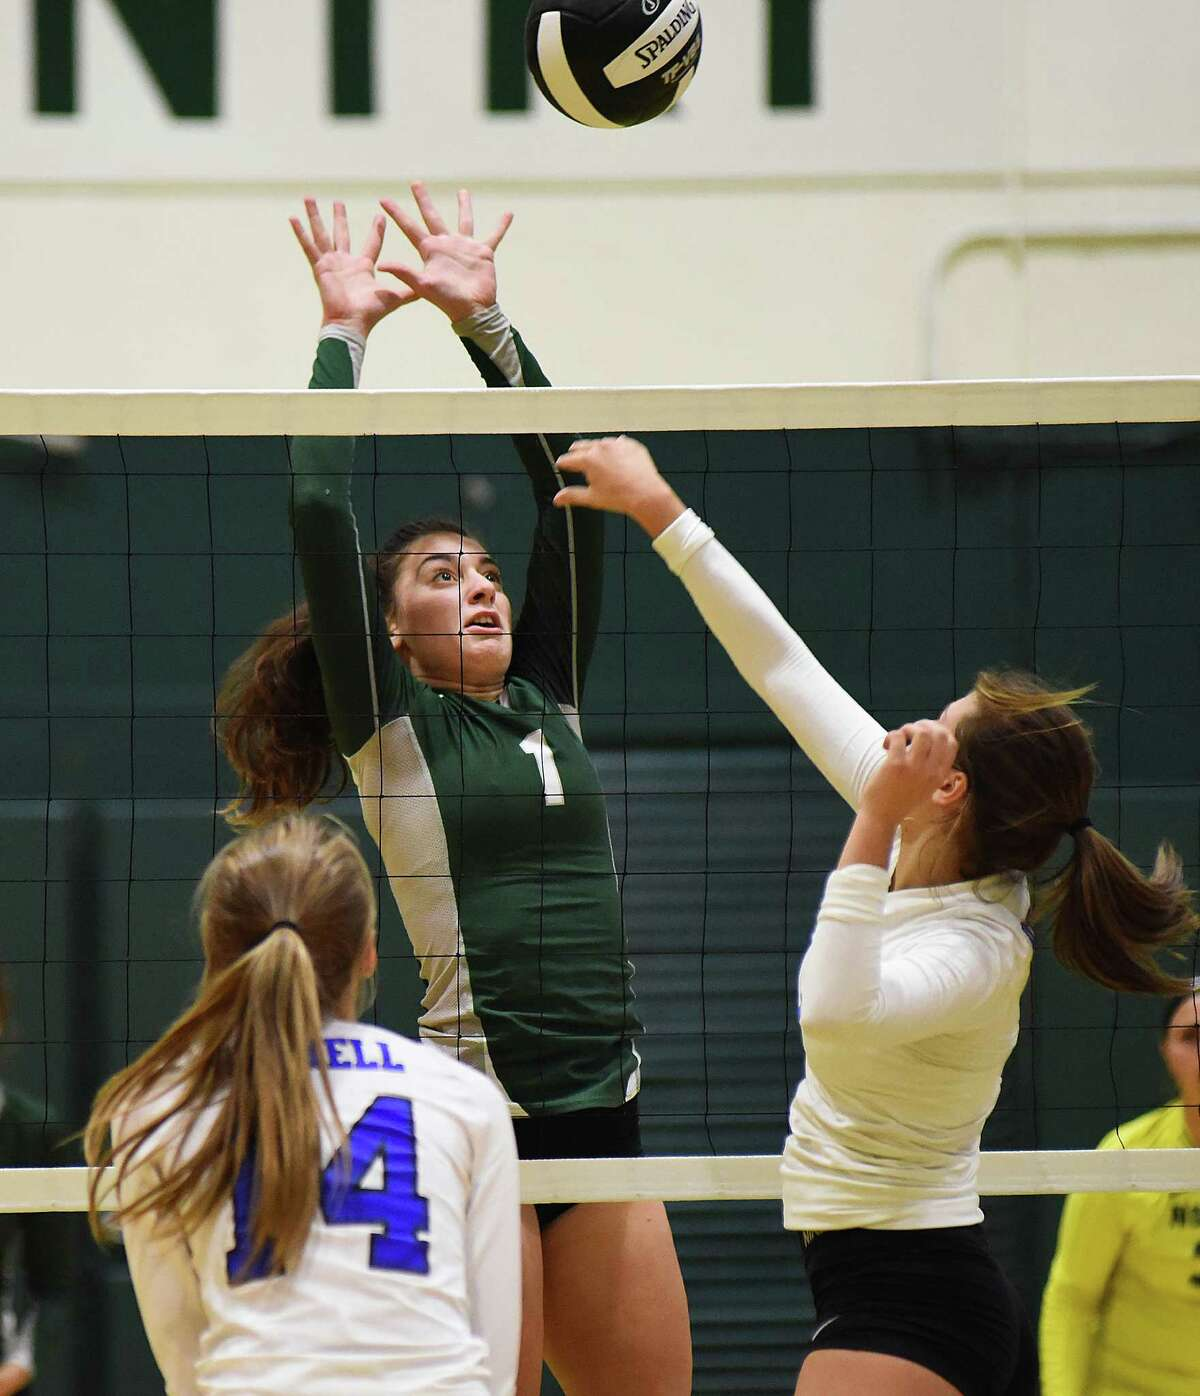 Norwalk's Edona Jakaj, center, looks to block Bunnell's Gabby Shannon, right, as the Bulldogs' Katie Boyle looks on during Monday's game at Scarso Gym in Norwalk.